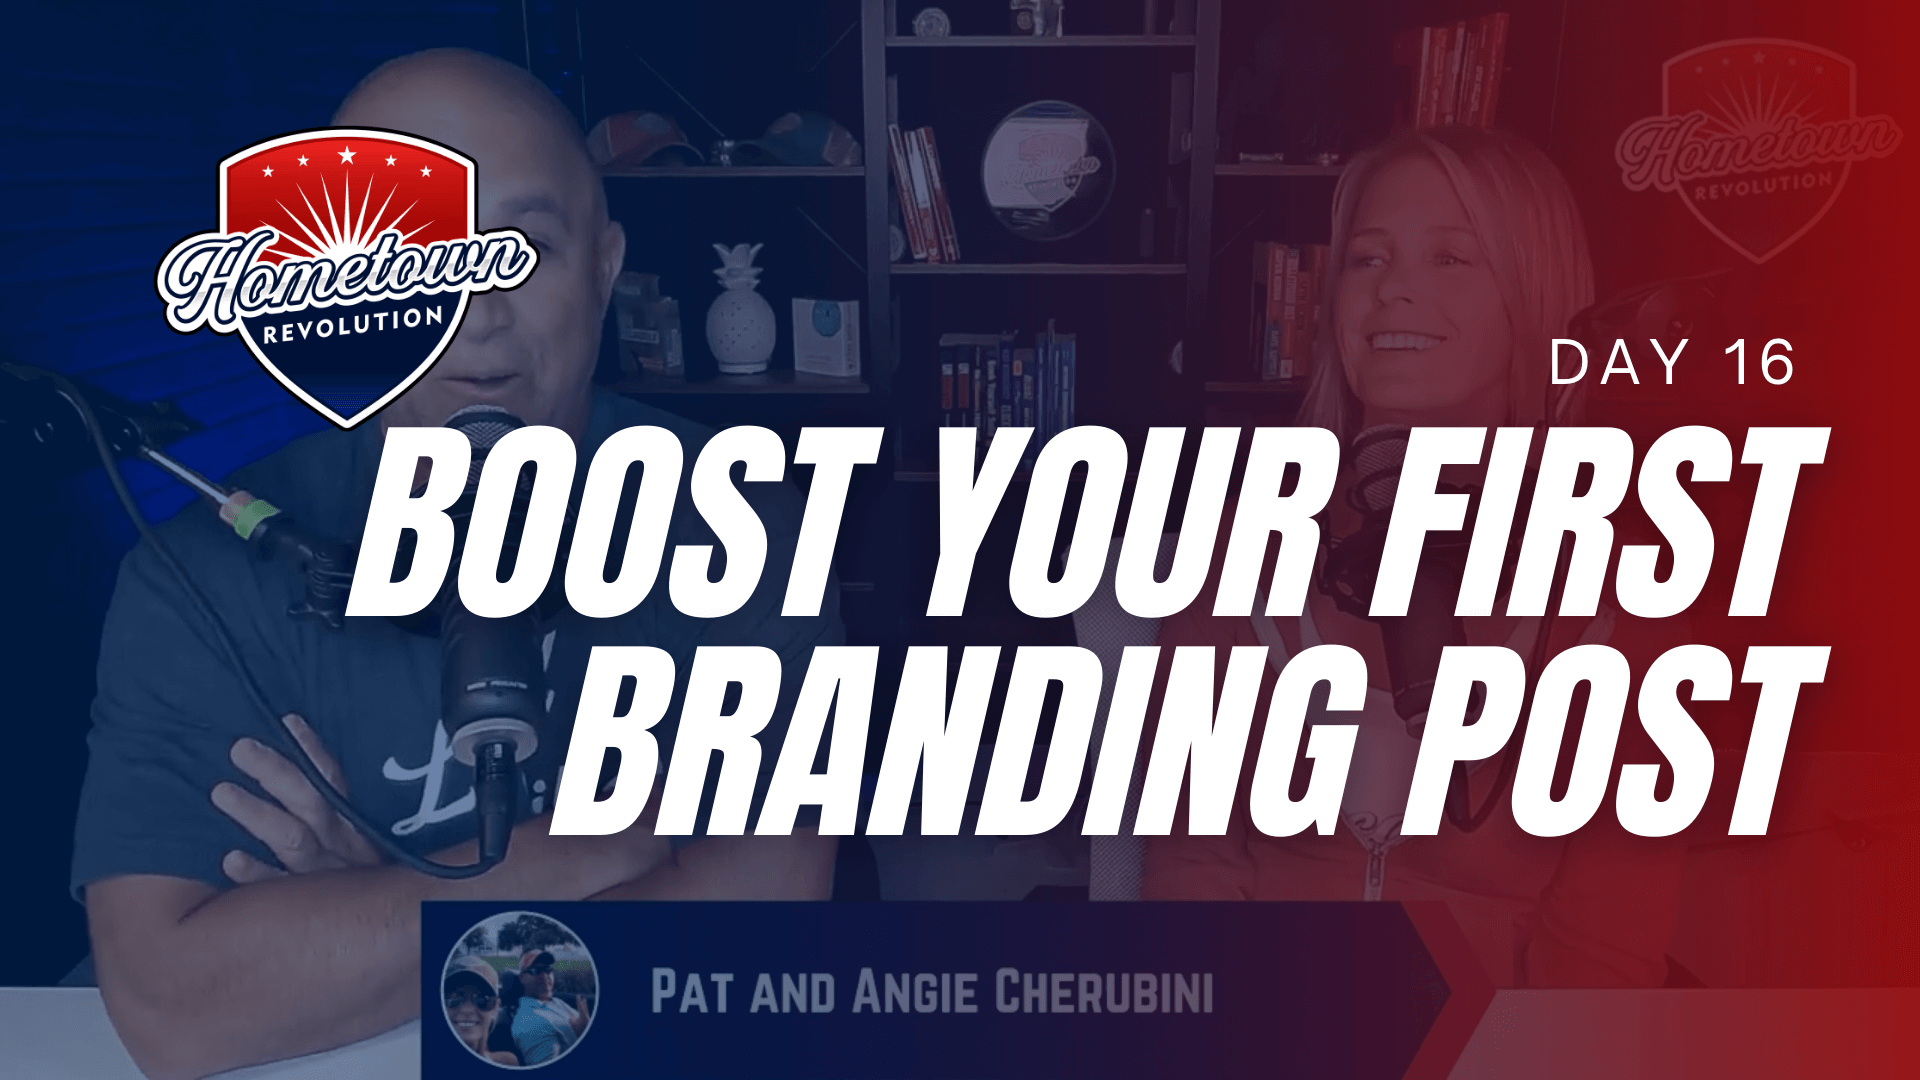 Boost Your First Branding Post